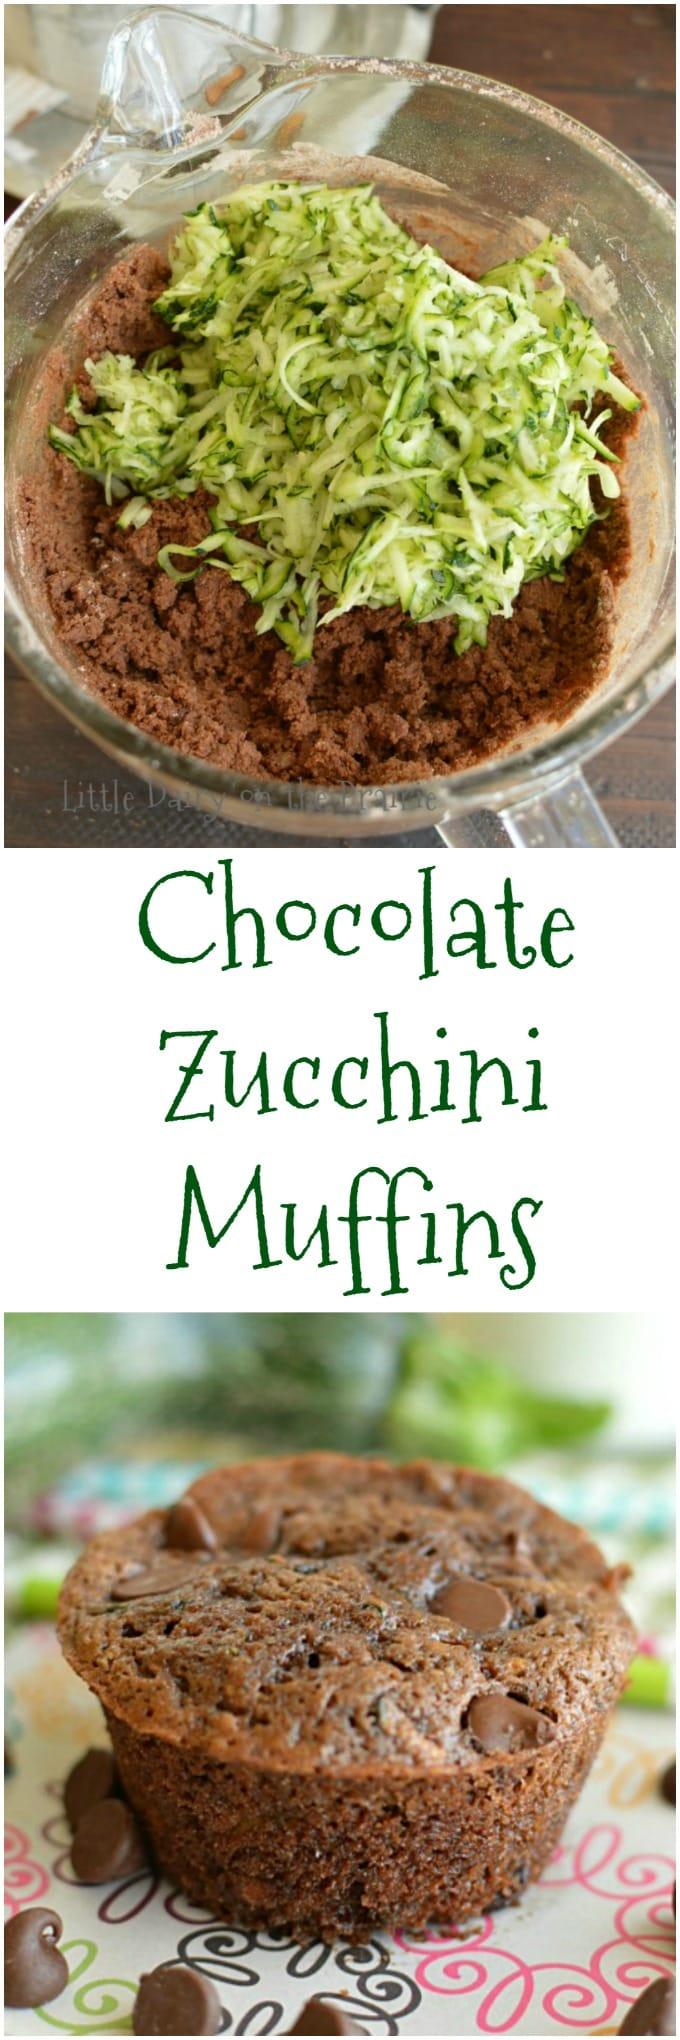 Chocolate Zucchini Muffins are perfect for those mornings you know you are going to need chocolate, for after school snacks, or for dessert!